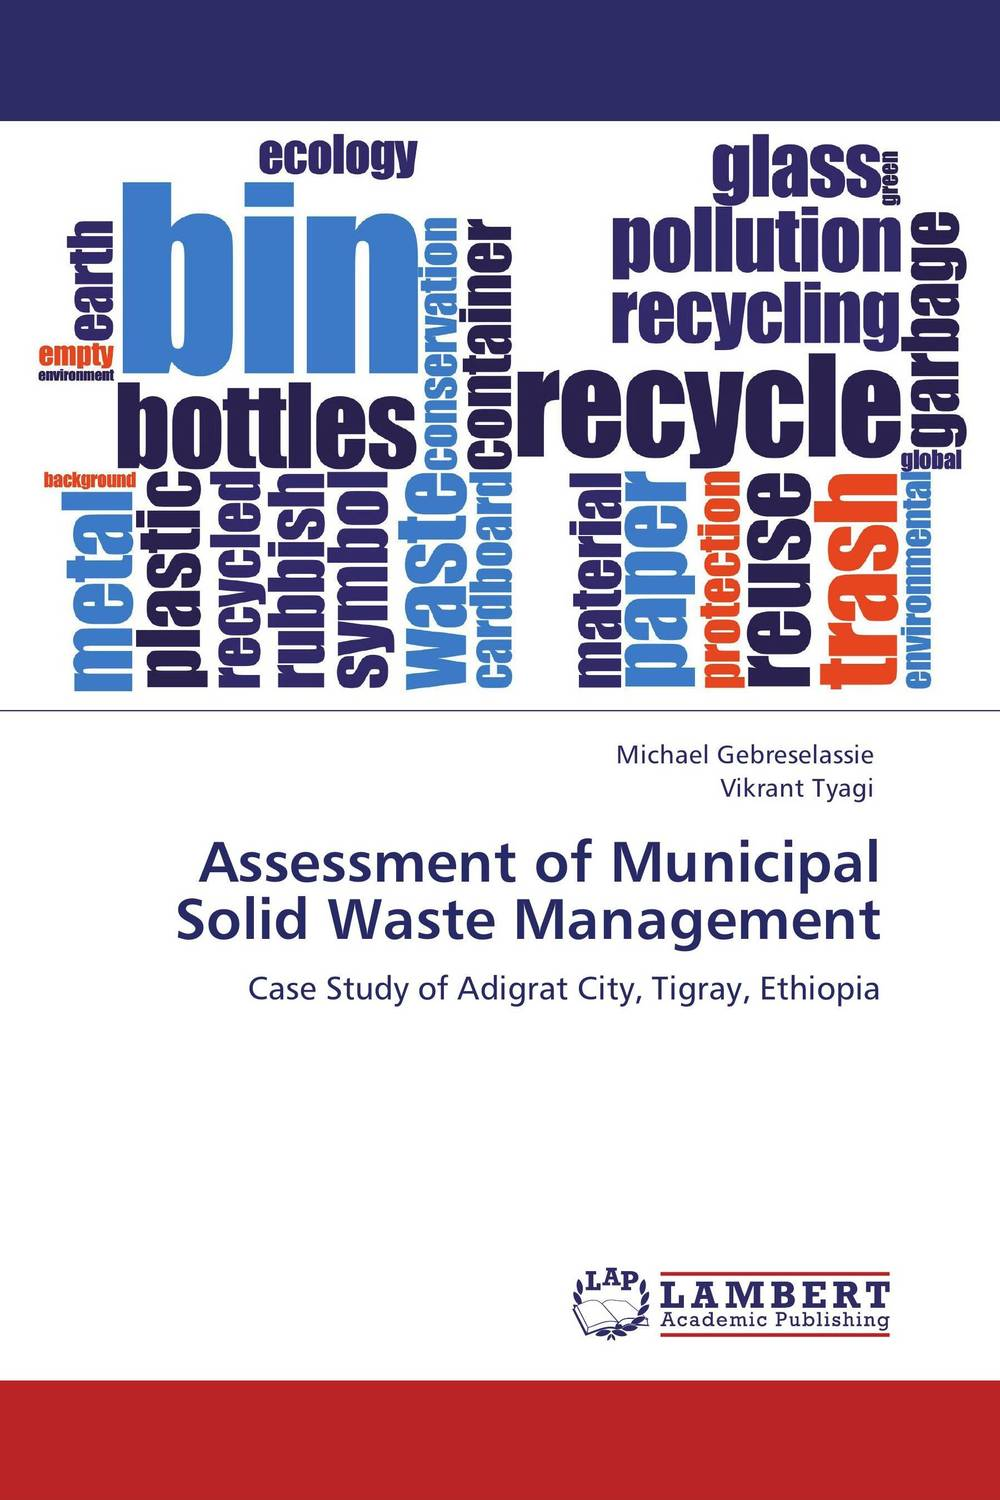 Assessment of Municipal Solid Waste Management